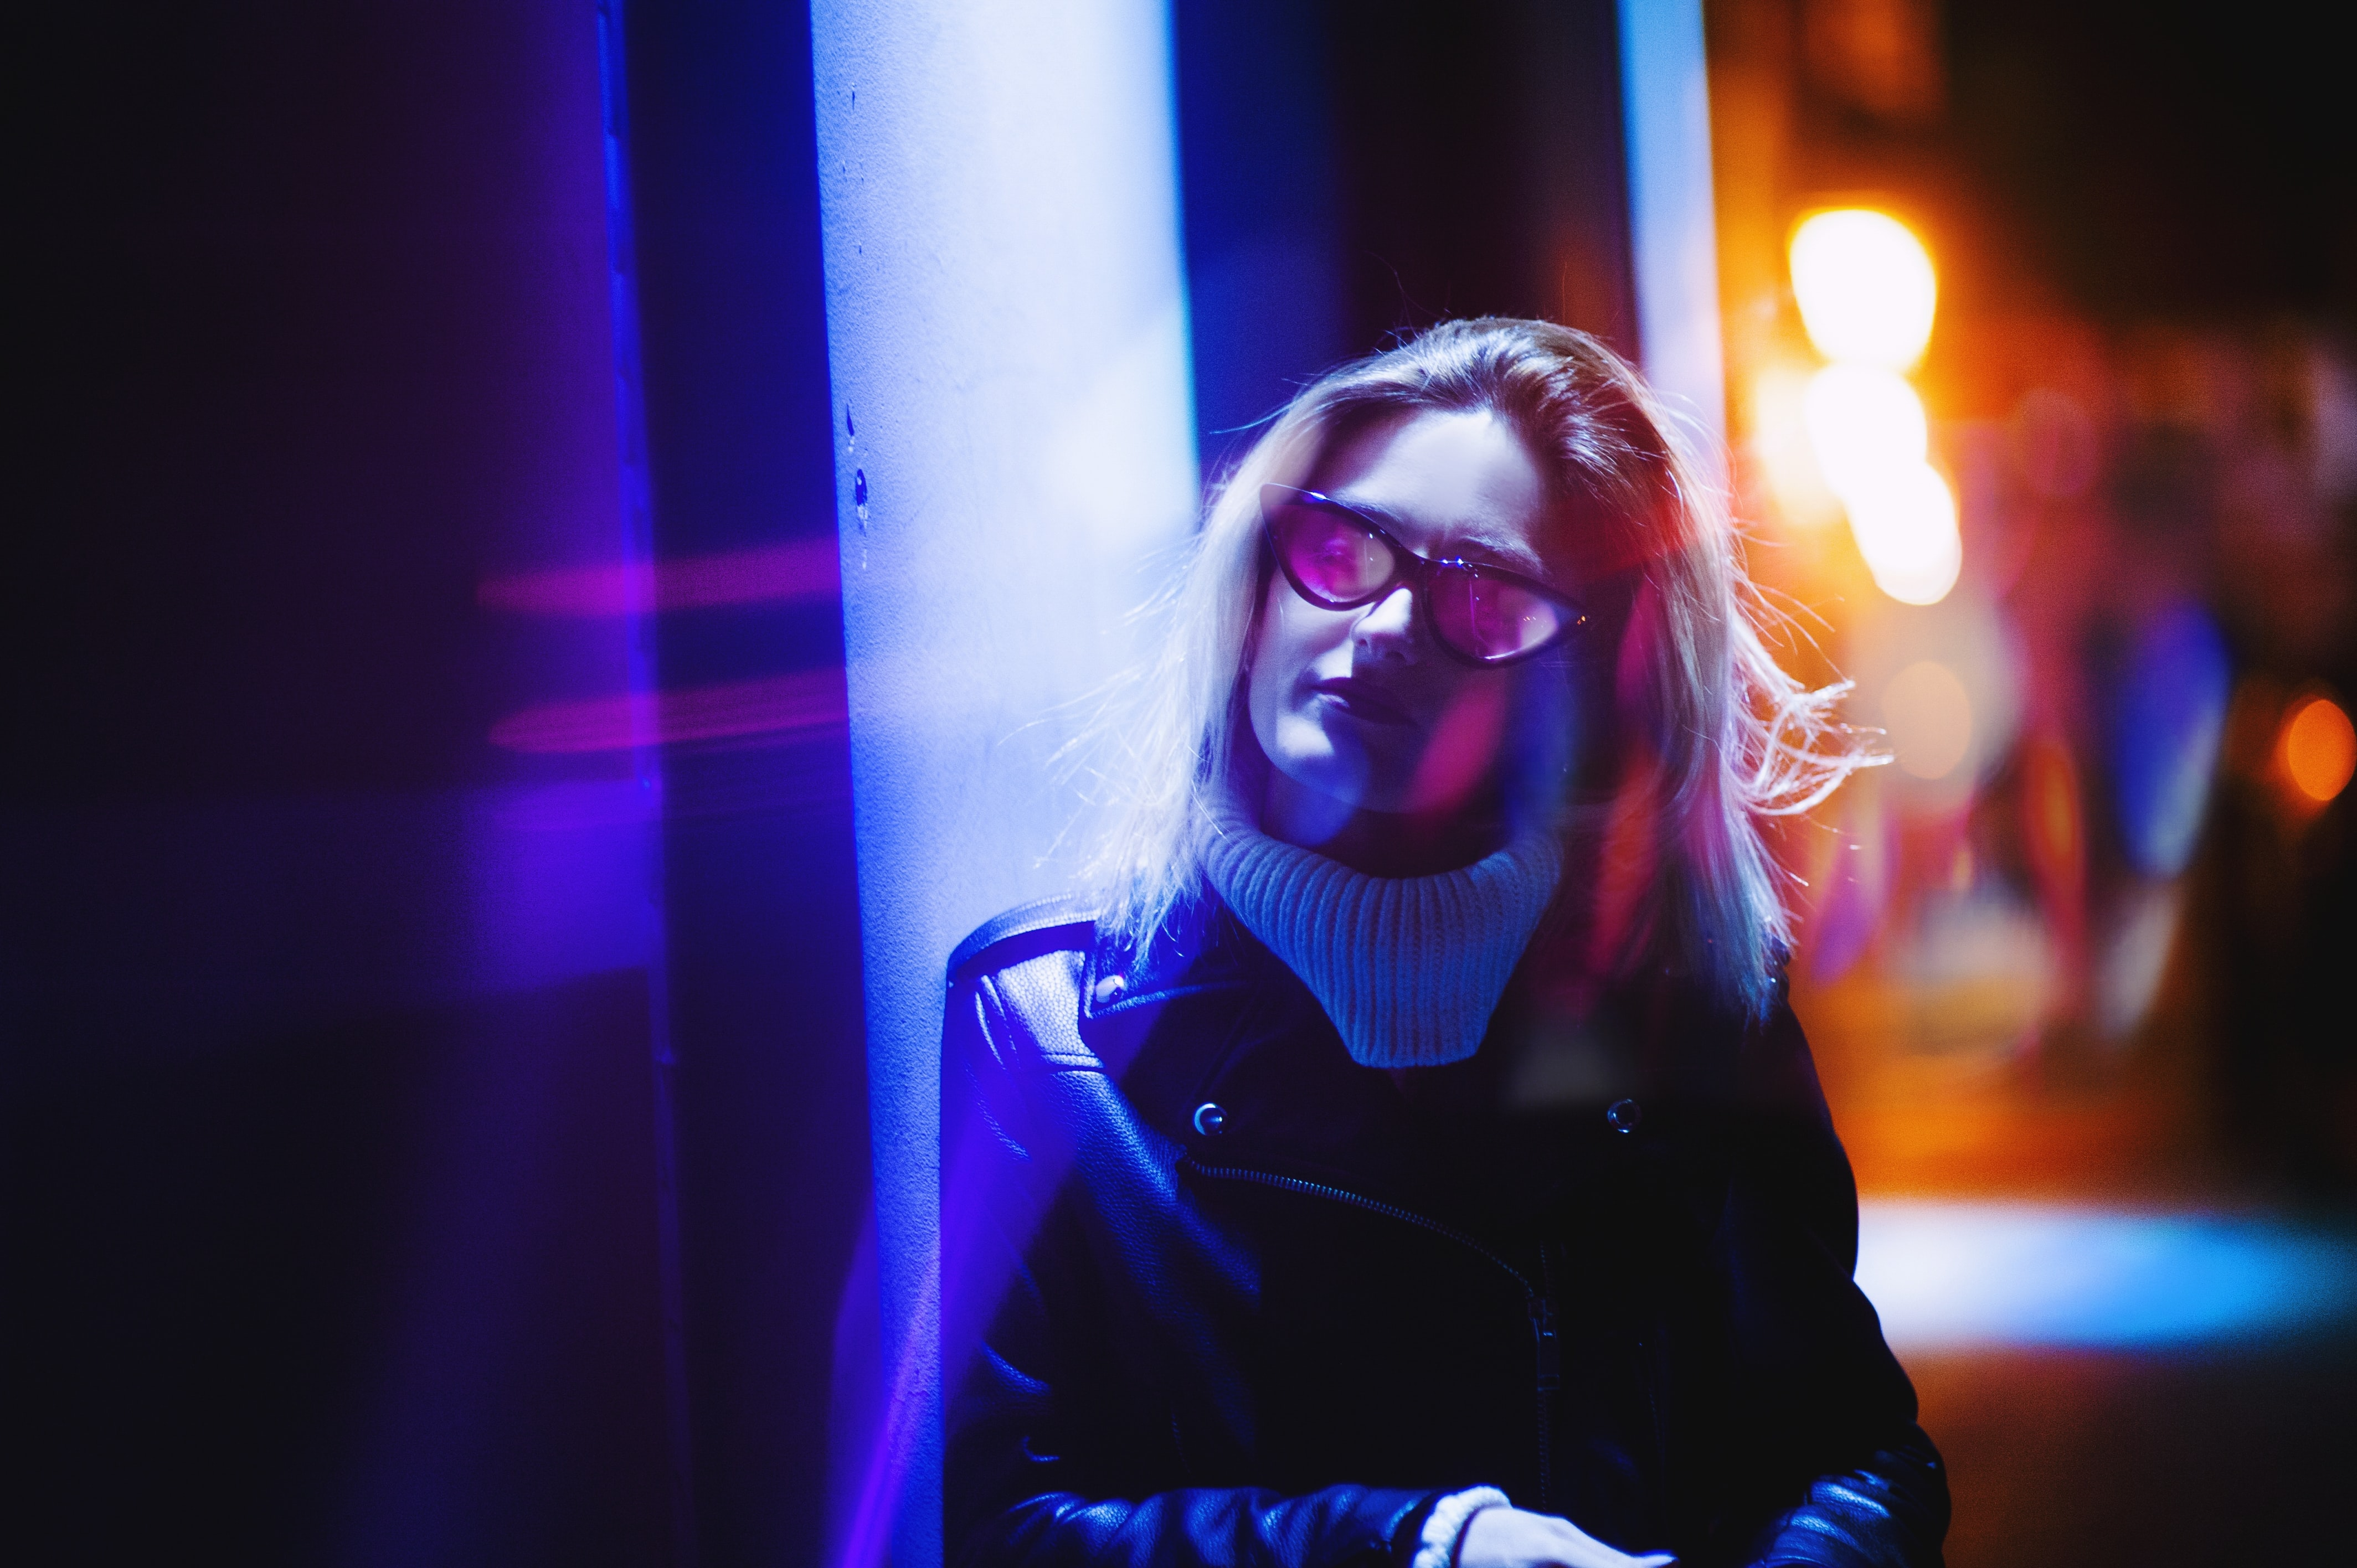 woman wearing sunglasses low light photography